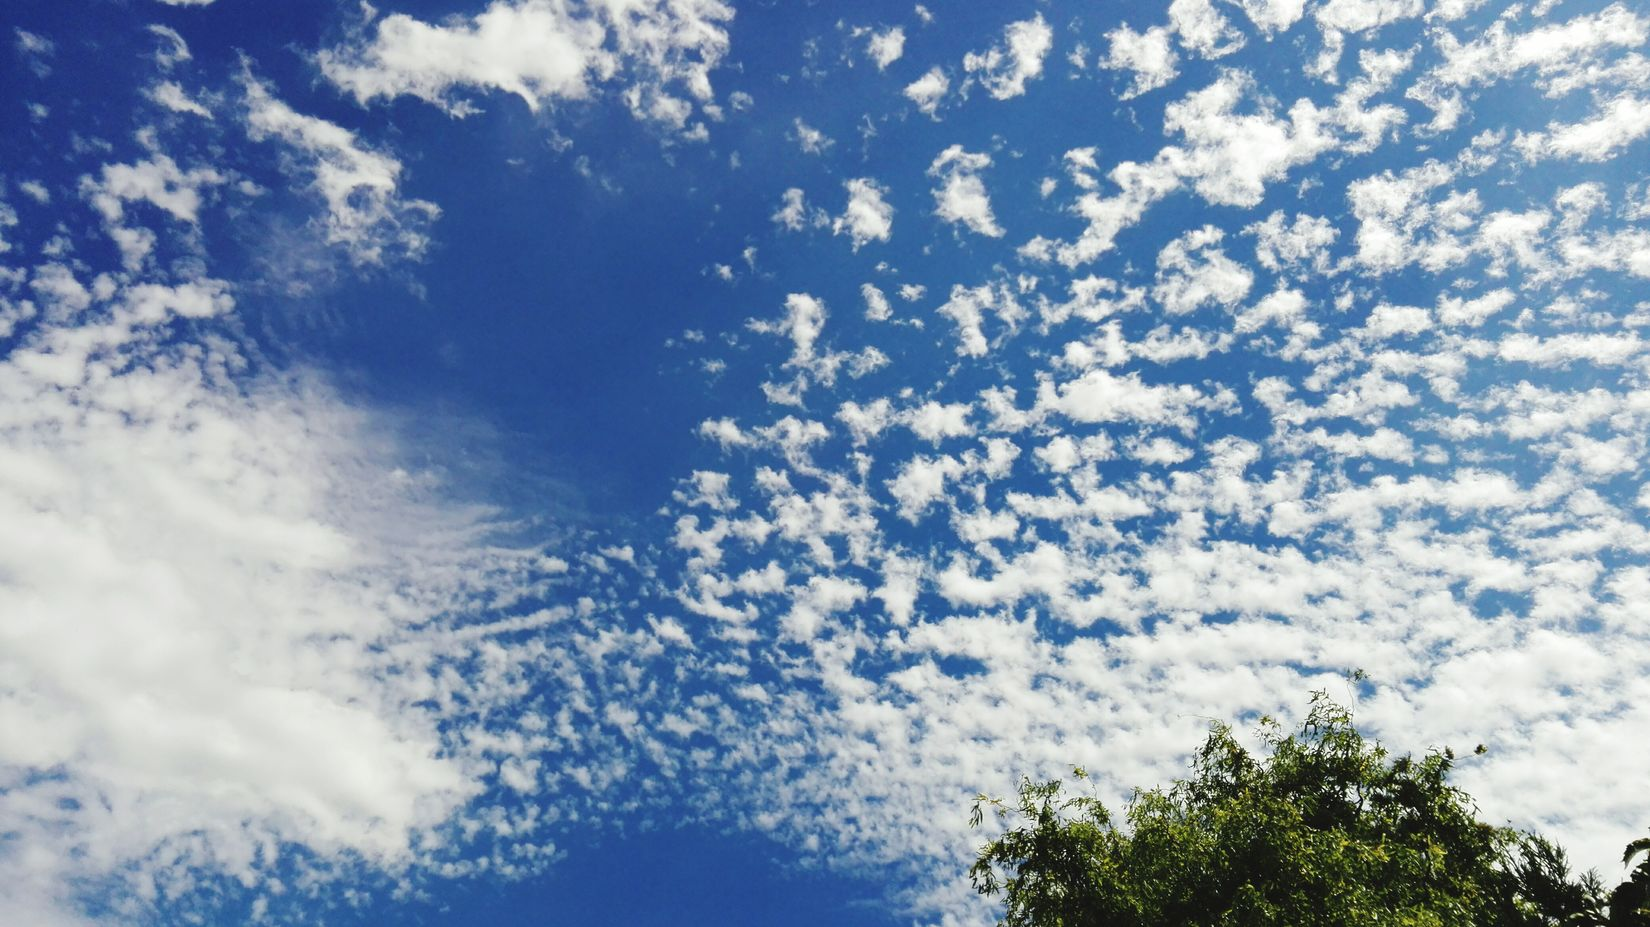 Taking Photos Check This Out Sky And Clouds Cloudporn White Clouds And Blue Sky Blue Sky July 2016 See What I See How Is The Weather Today? Summer 2016 Clouds And Sky Showcase July Summer Feeling Summer